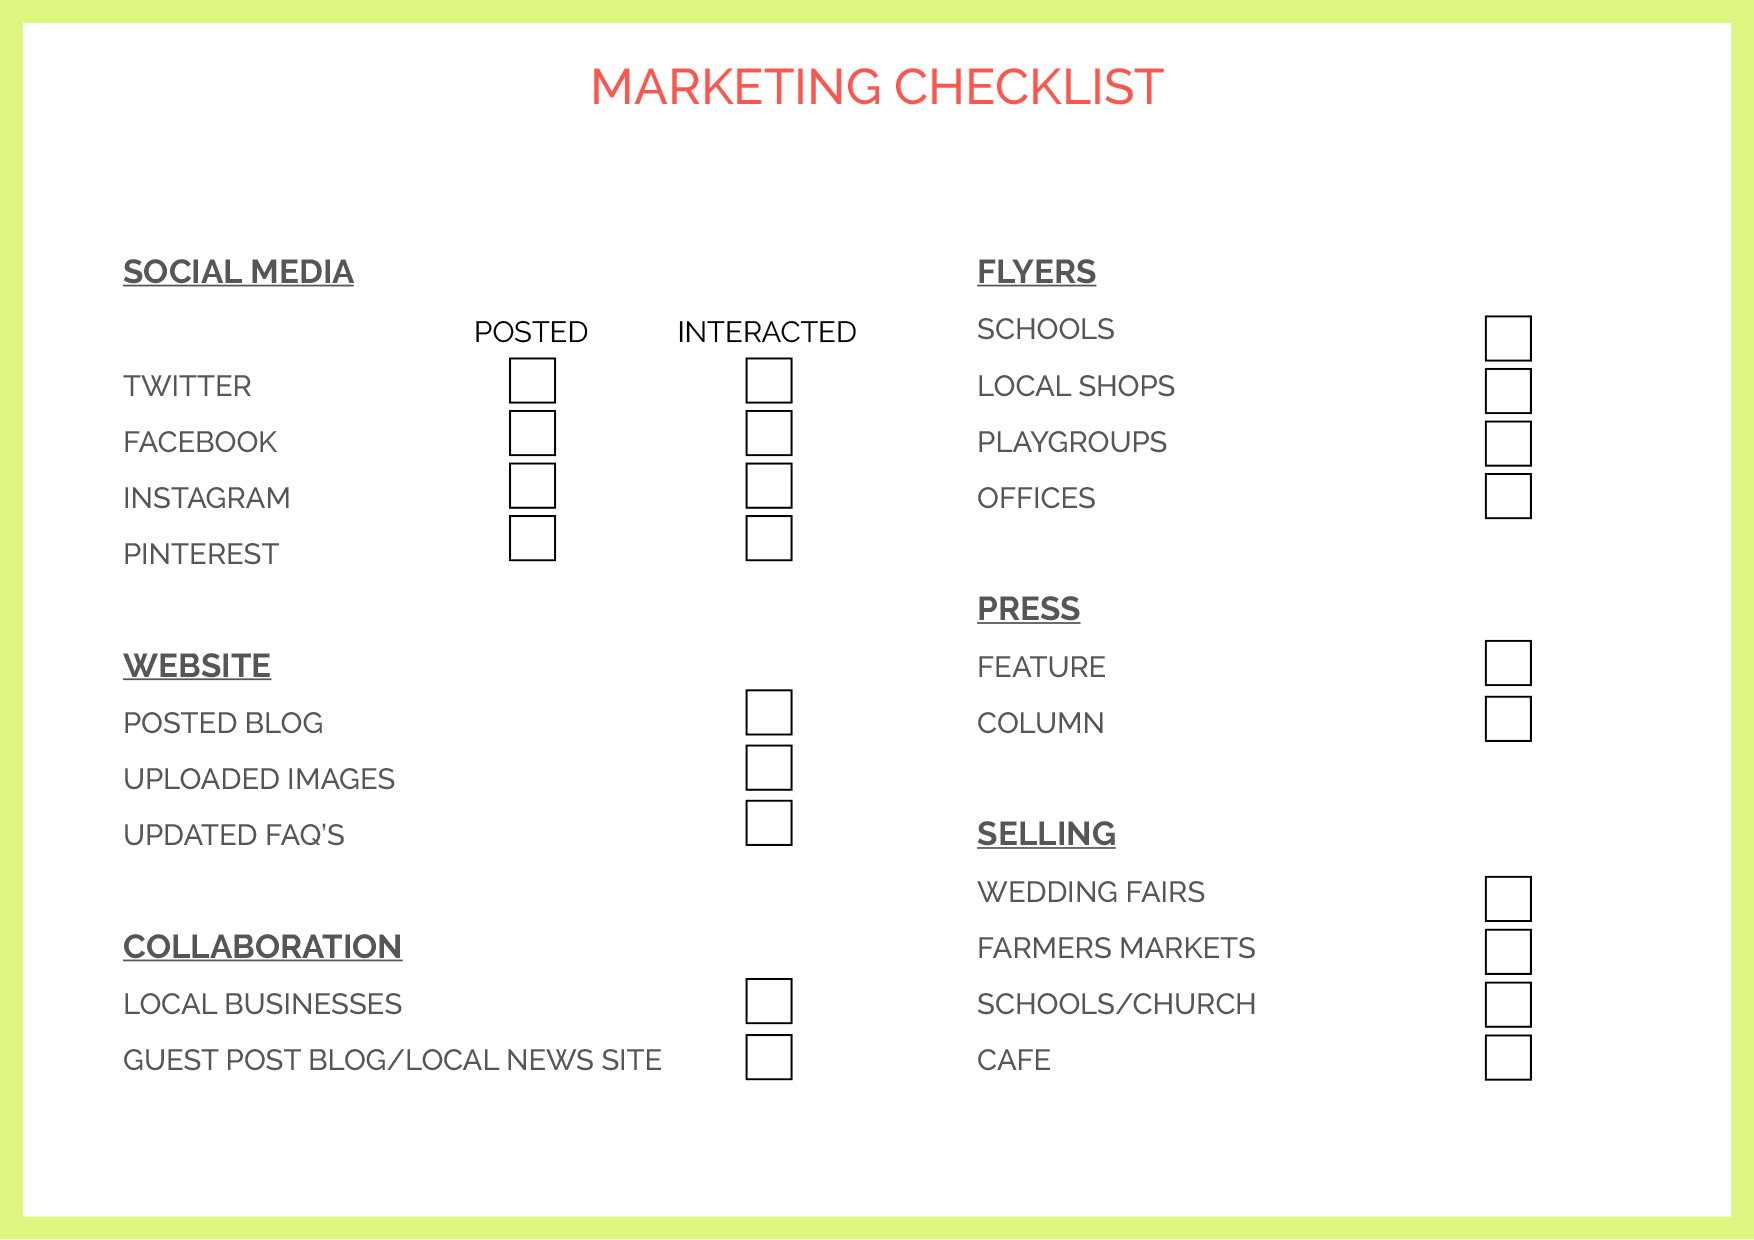 MARKETING CHECKLIST.jpg